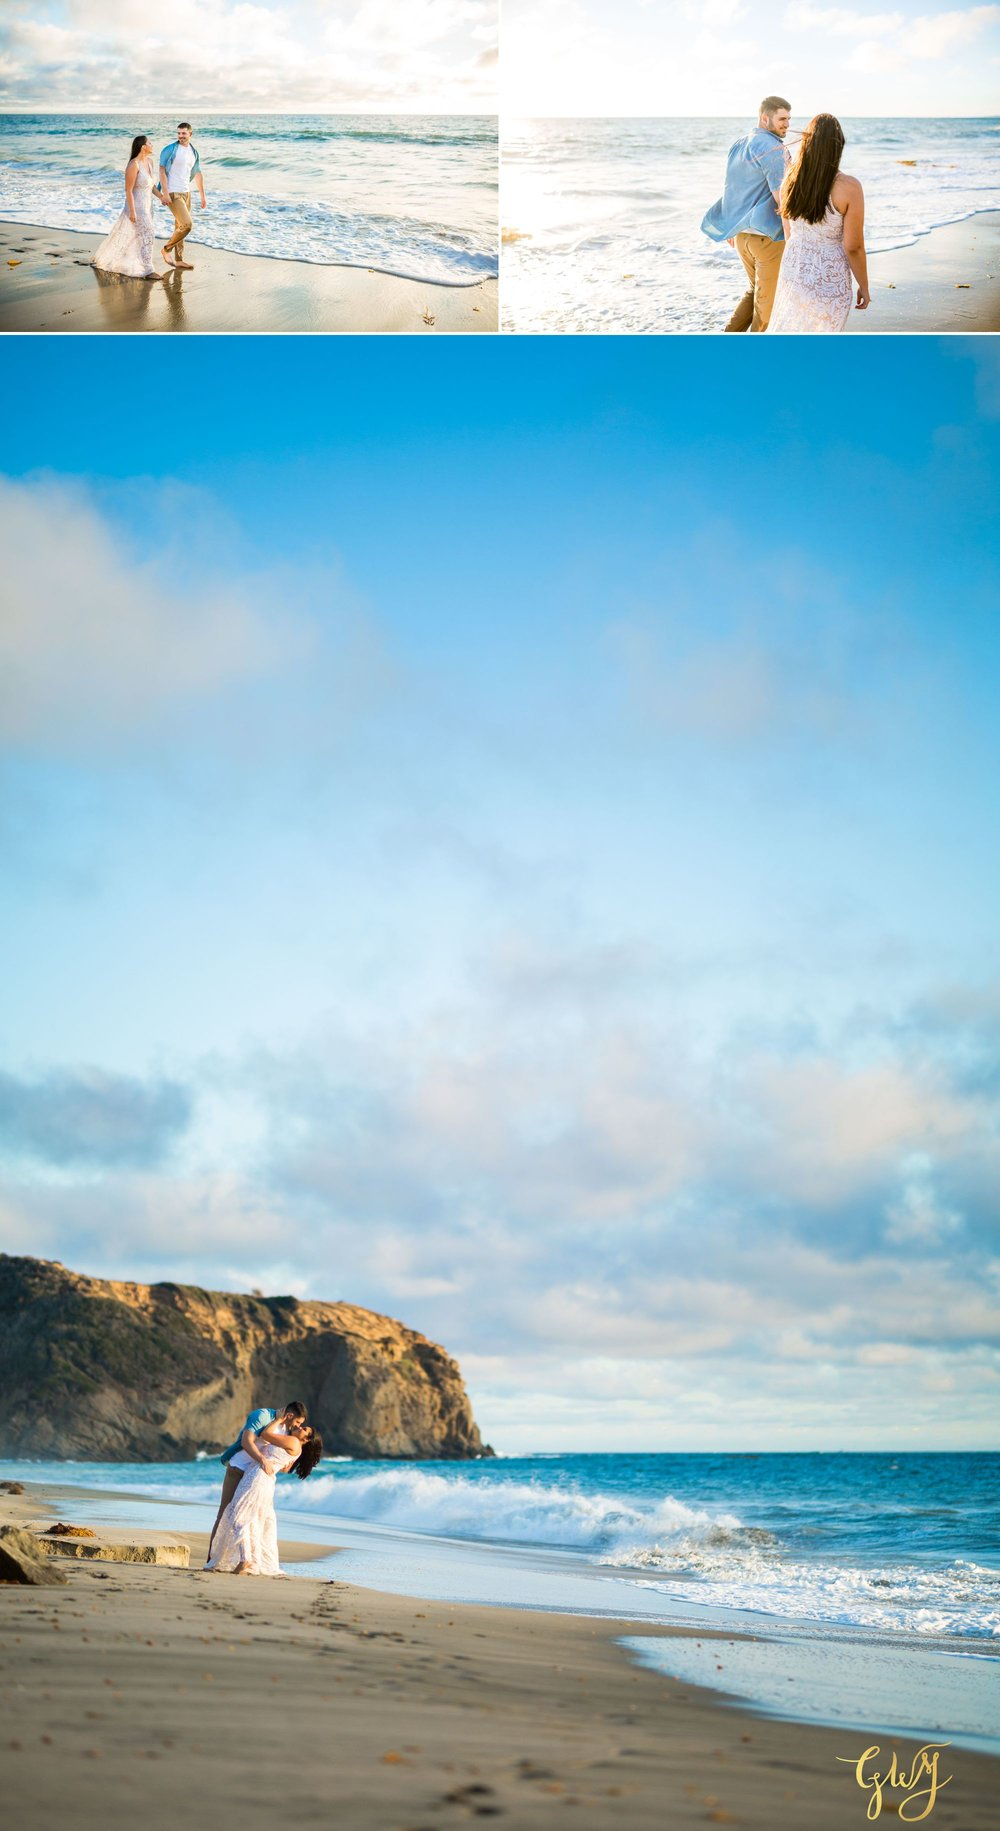 Alejandro + Rachel Mission San Juan Capistrano Strands Beach Dana Point Sunset Engagement by Glass Woods Media 11.jpg